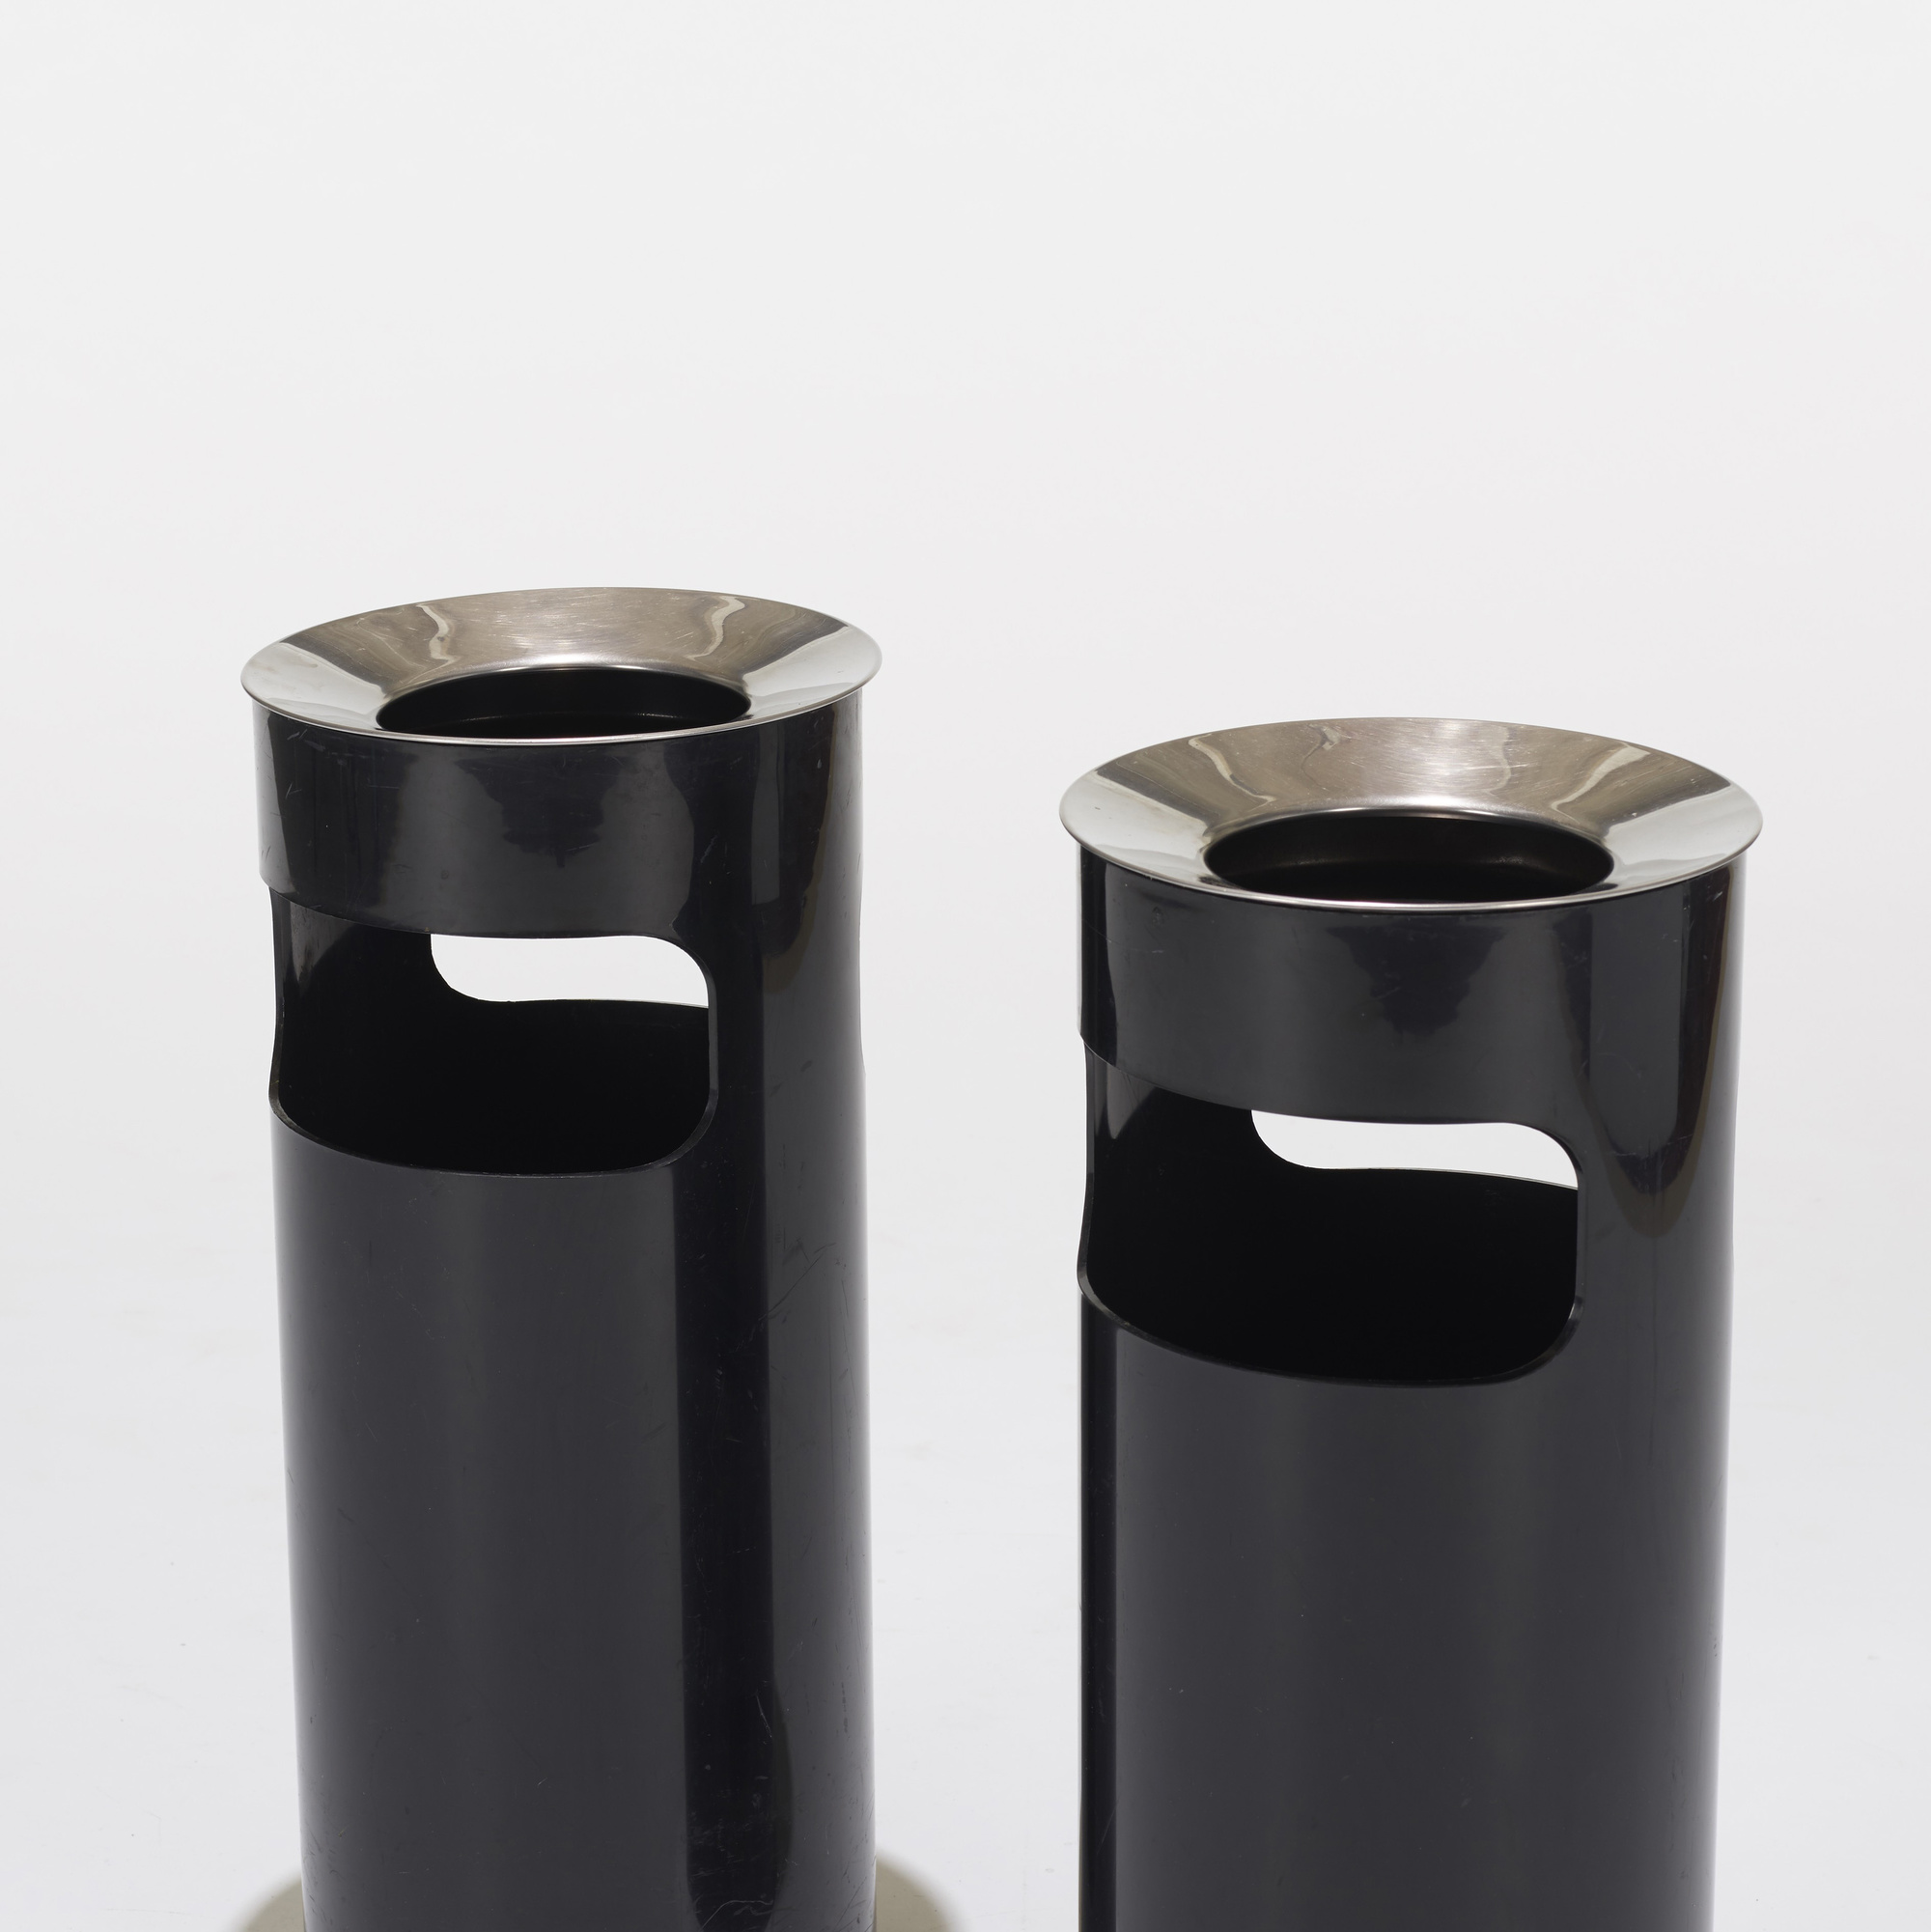 235: Gino Colombini / Umbrella Stands, pair (2 of 2)